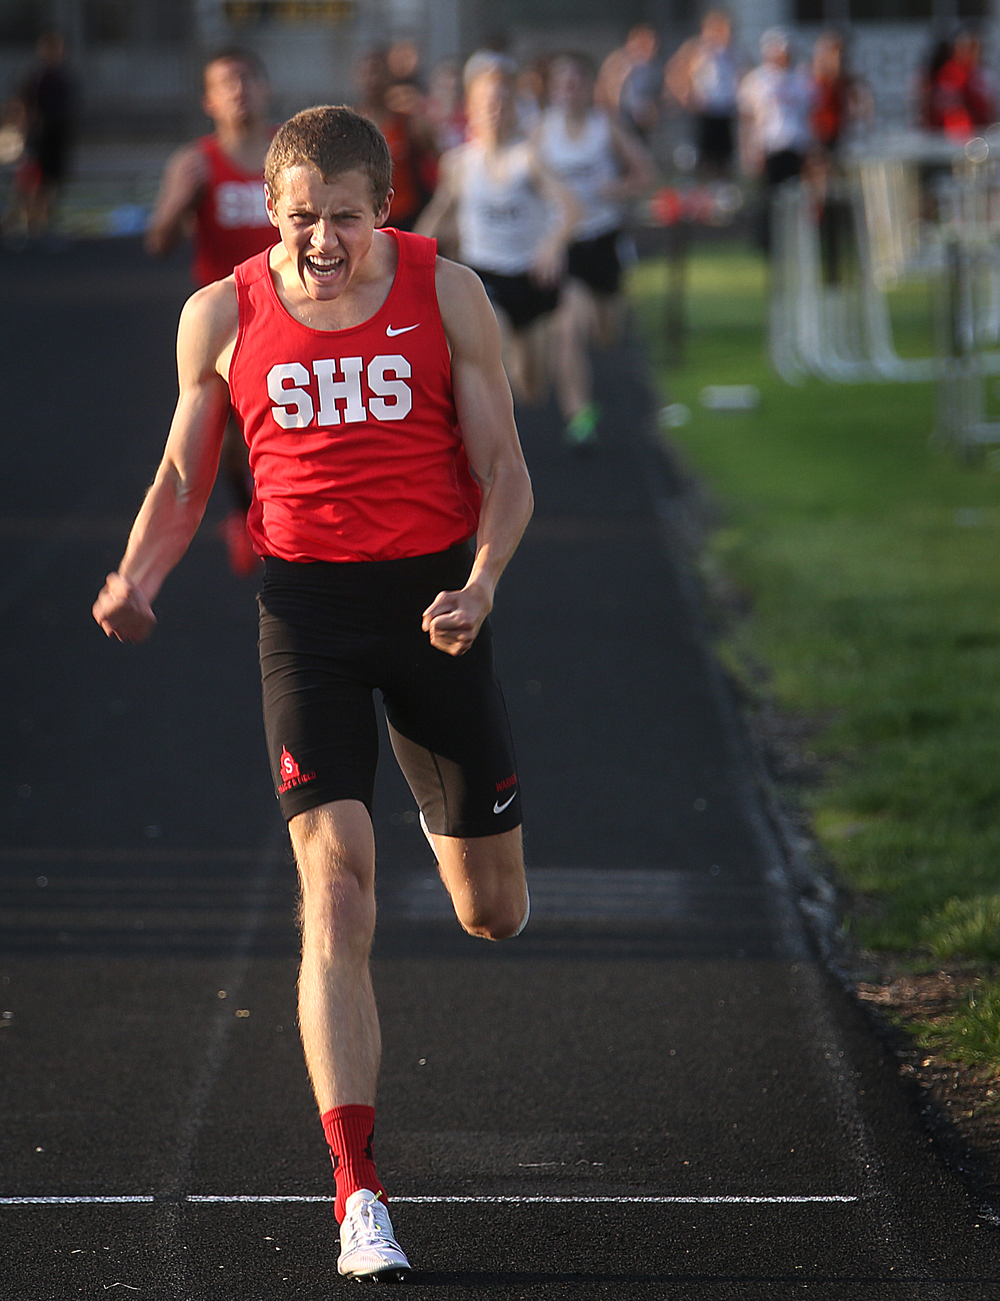 Springfield High School runner Heath Warren celebrates at the finish line after breaking the City Meet record held since 1987 in the 800 meter run with a time of 1:53.22. The Boys City Track Meet took place at Memorial Stadium in Springfield on Tuesday, May 5, 2015. David Spencer/The State Journal-Register